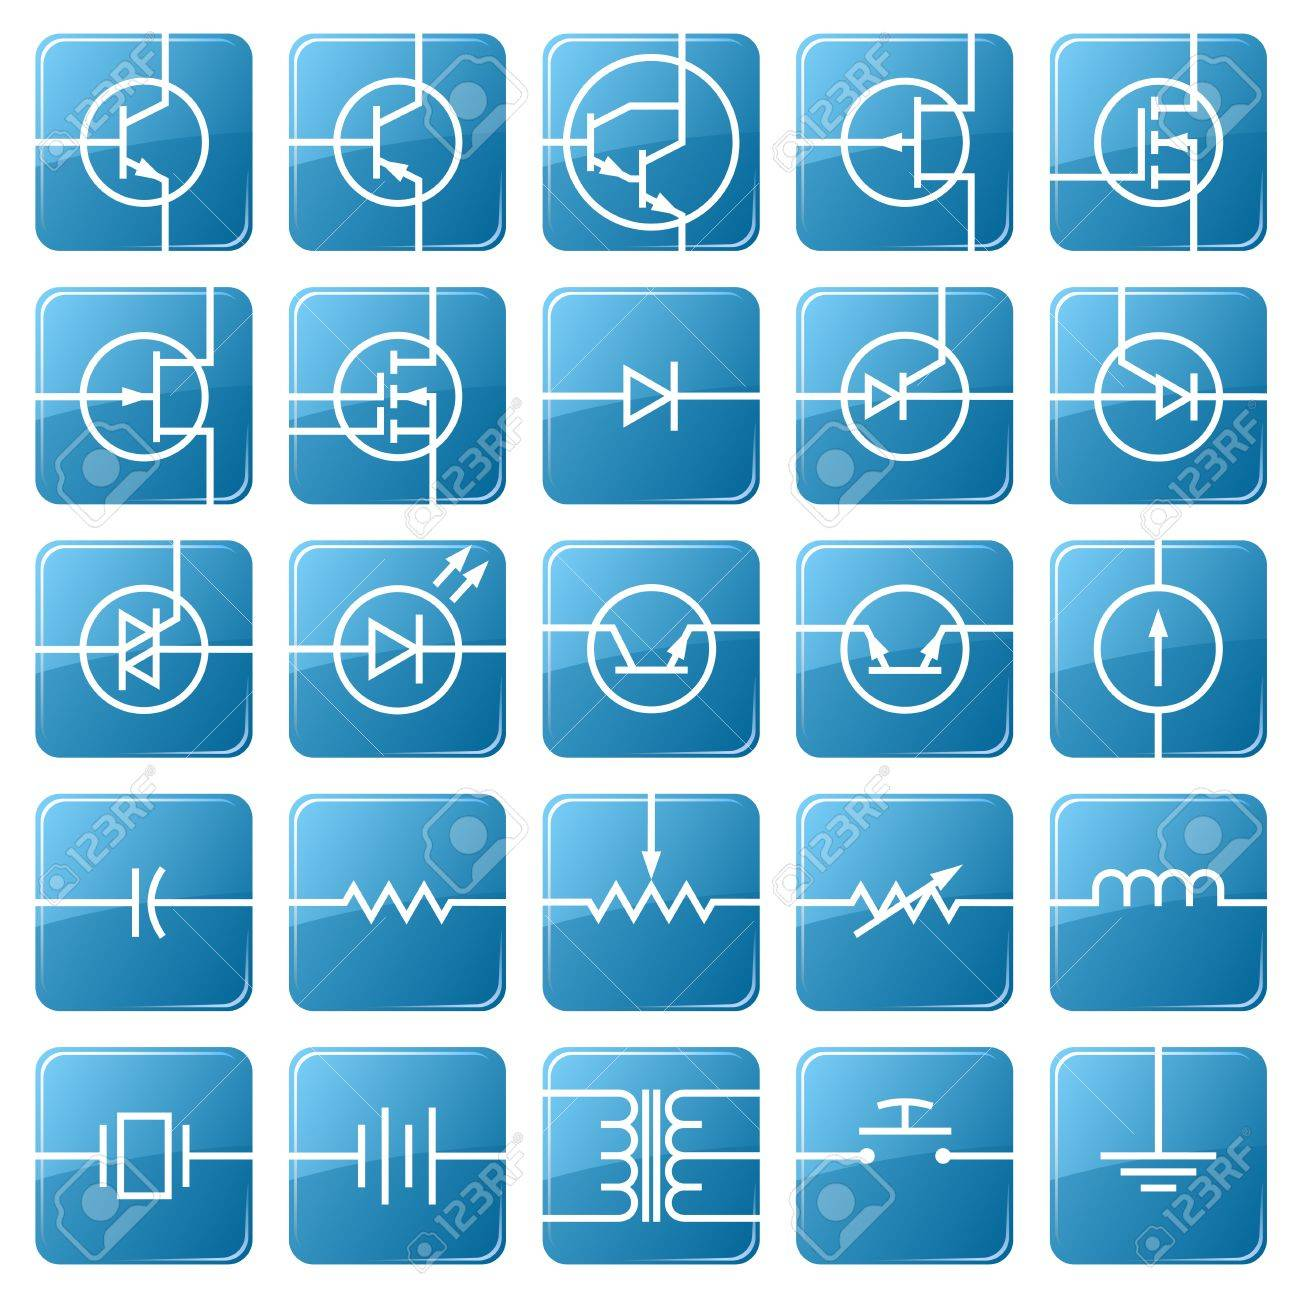 Symbols Of Electronic Components Are Shown In The Picture. Royalty ...